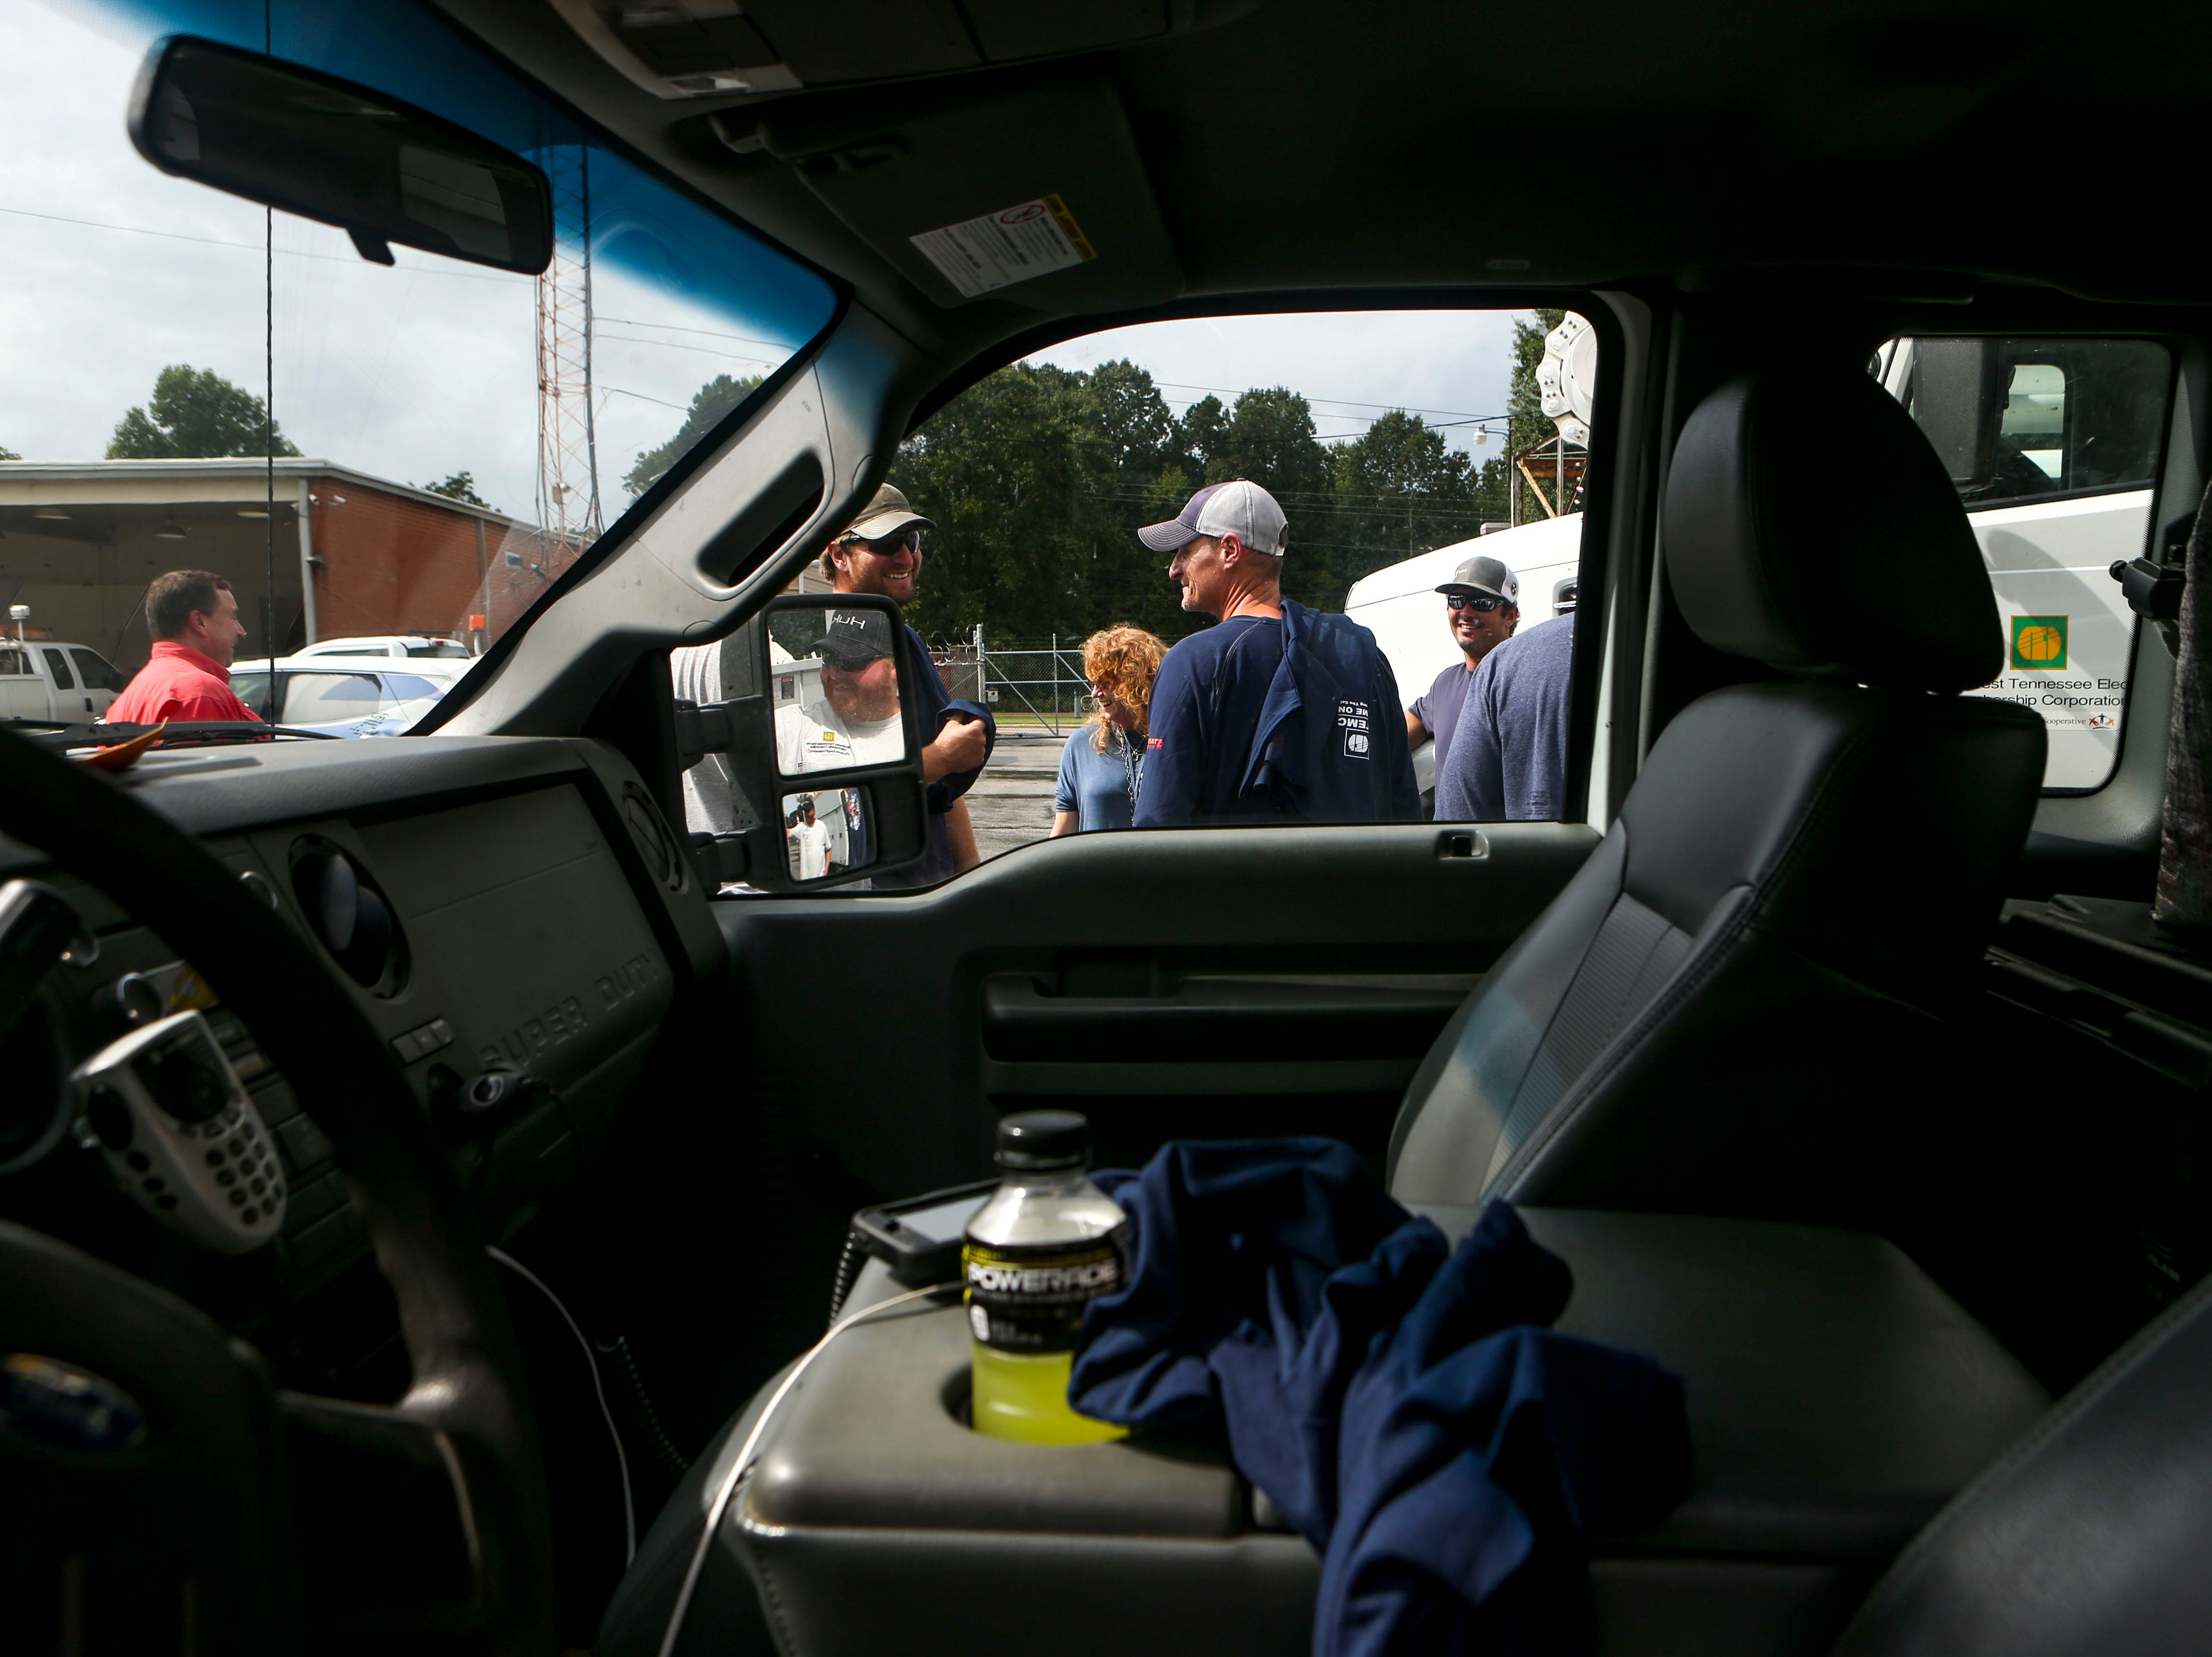 Looking through the window of a truck, linemen chat with one another and the greeting party that met to welcome them home after working in North Carolina following Hurricane Florence at Southwest Tennessee Electric in Jackson, Tenn., Monday, Sept. 24, 2018.